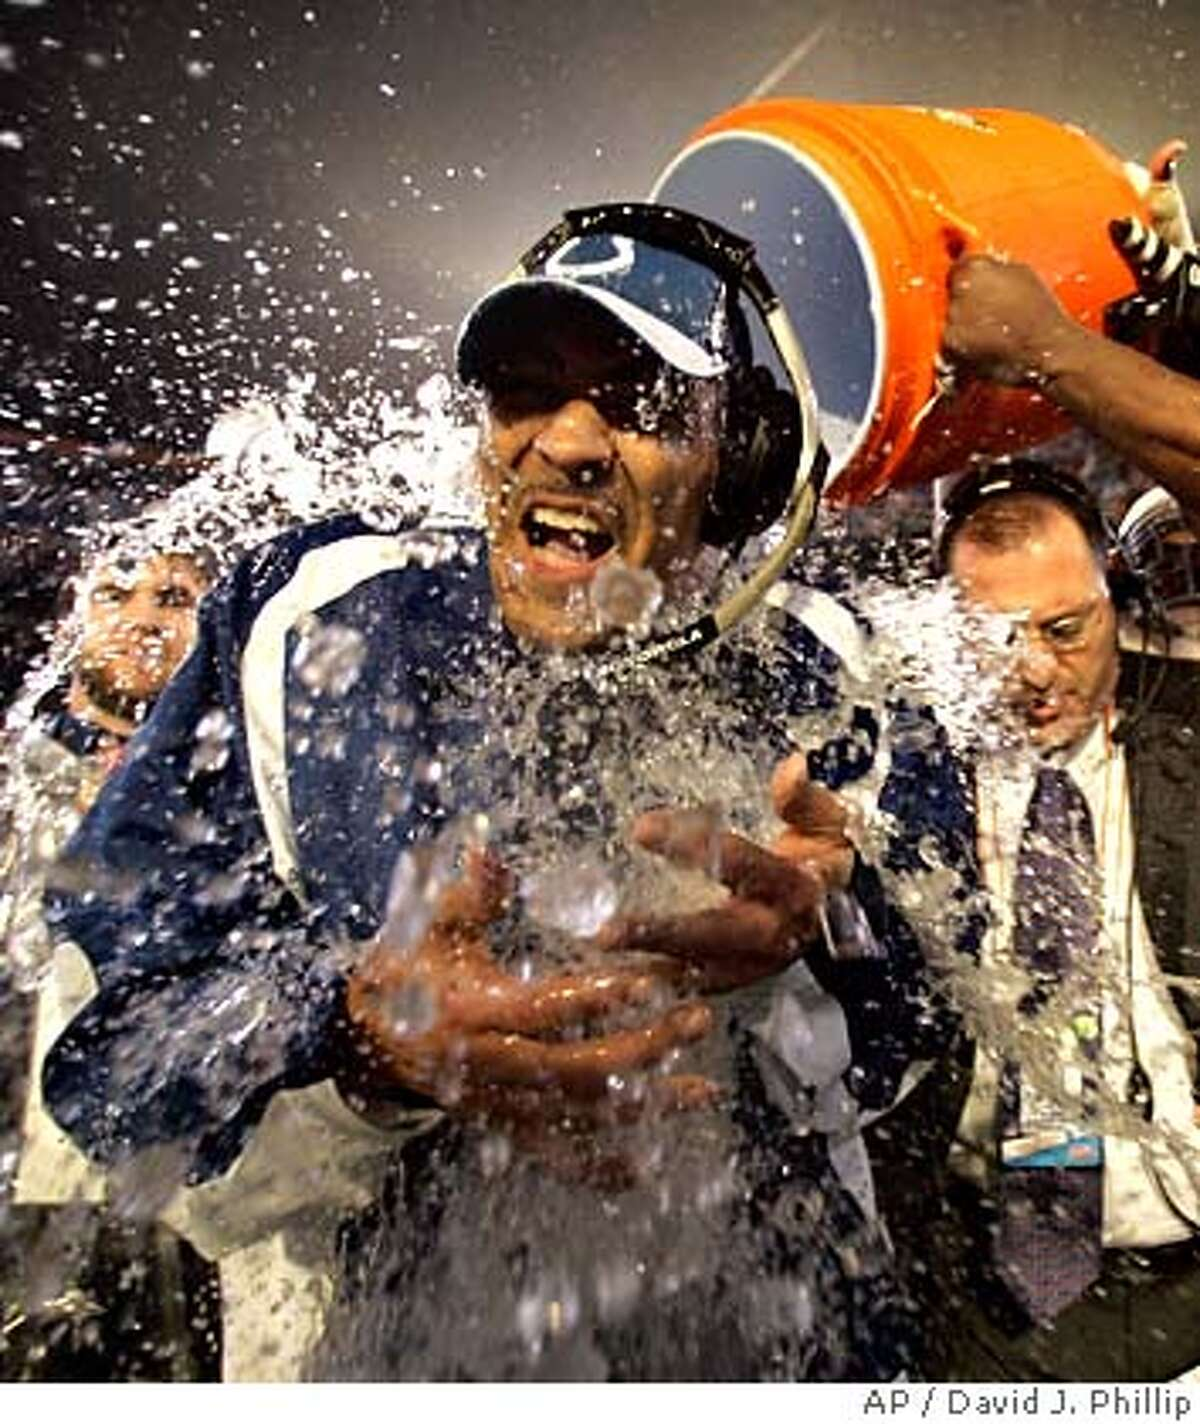 Indianapolis Colts coach Tony Dungy is dunked after the Colts defeated the Chicago Bears 29-17 in the Super Bowl XLI football game at Dolphin Stadium in Miami, Sunday, Feb. 4, 2007. (AP Photo/David J. Phillip)